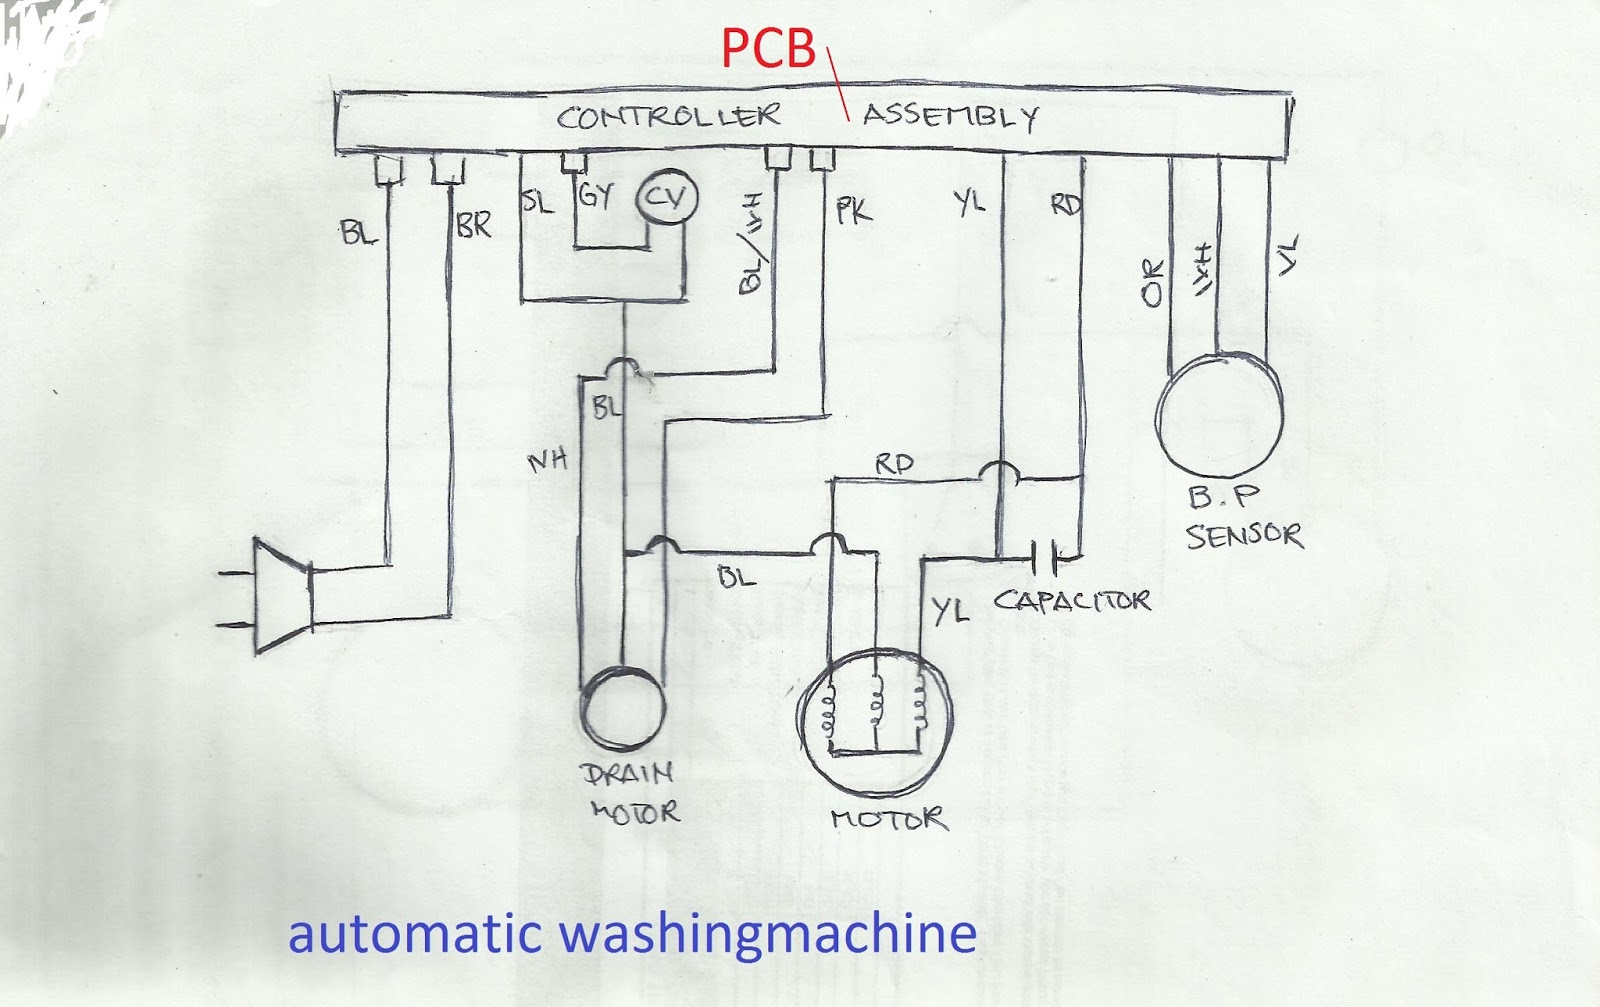 washine refrigeration and air conditioning repair wiring diagram of Air Conditioner Schematic Wiring Diagram at soozxer.org